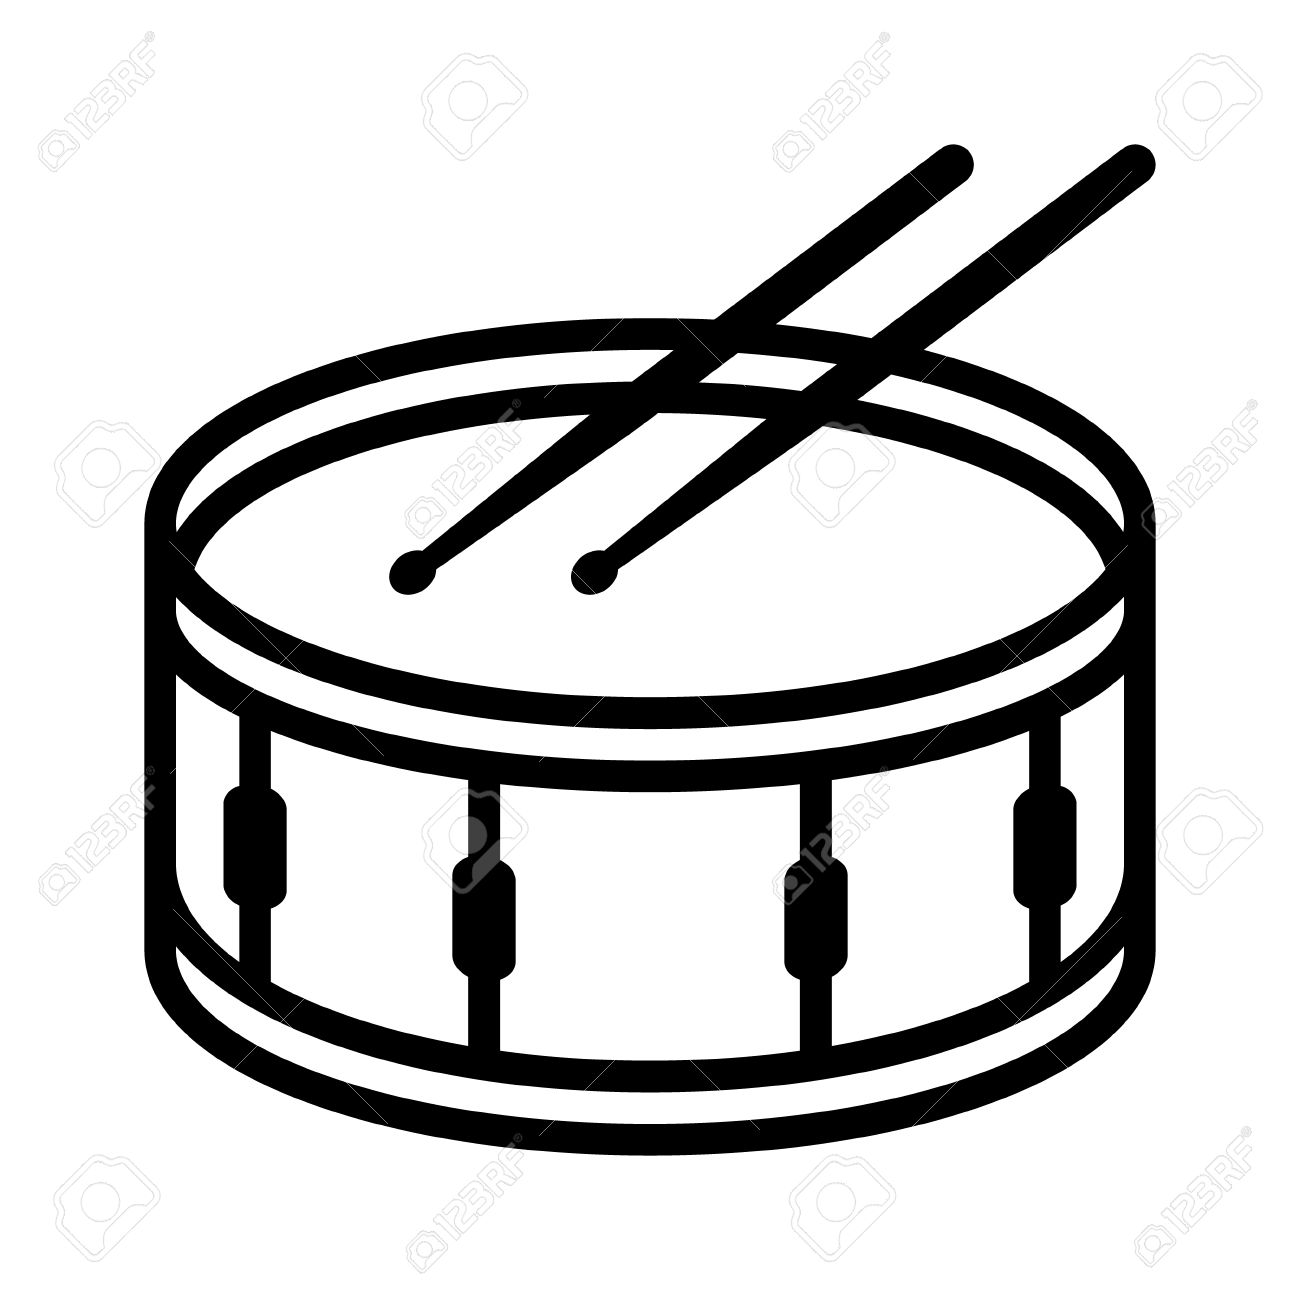 drum line drawing at getdrawings com free for personal use drum rh getdrawings com drum line clip art black and white Drumline Words